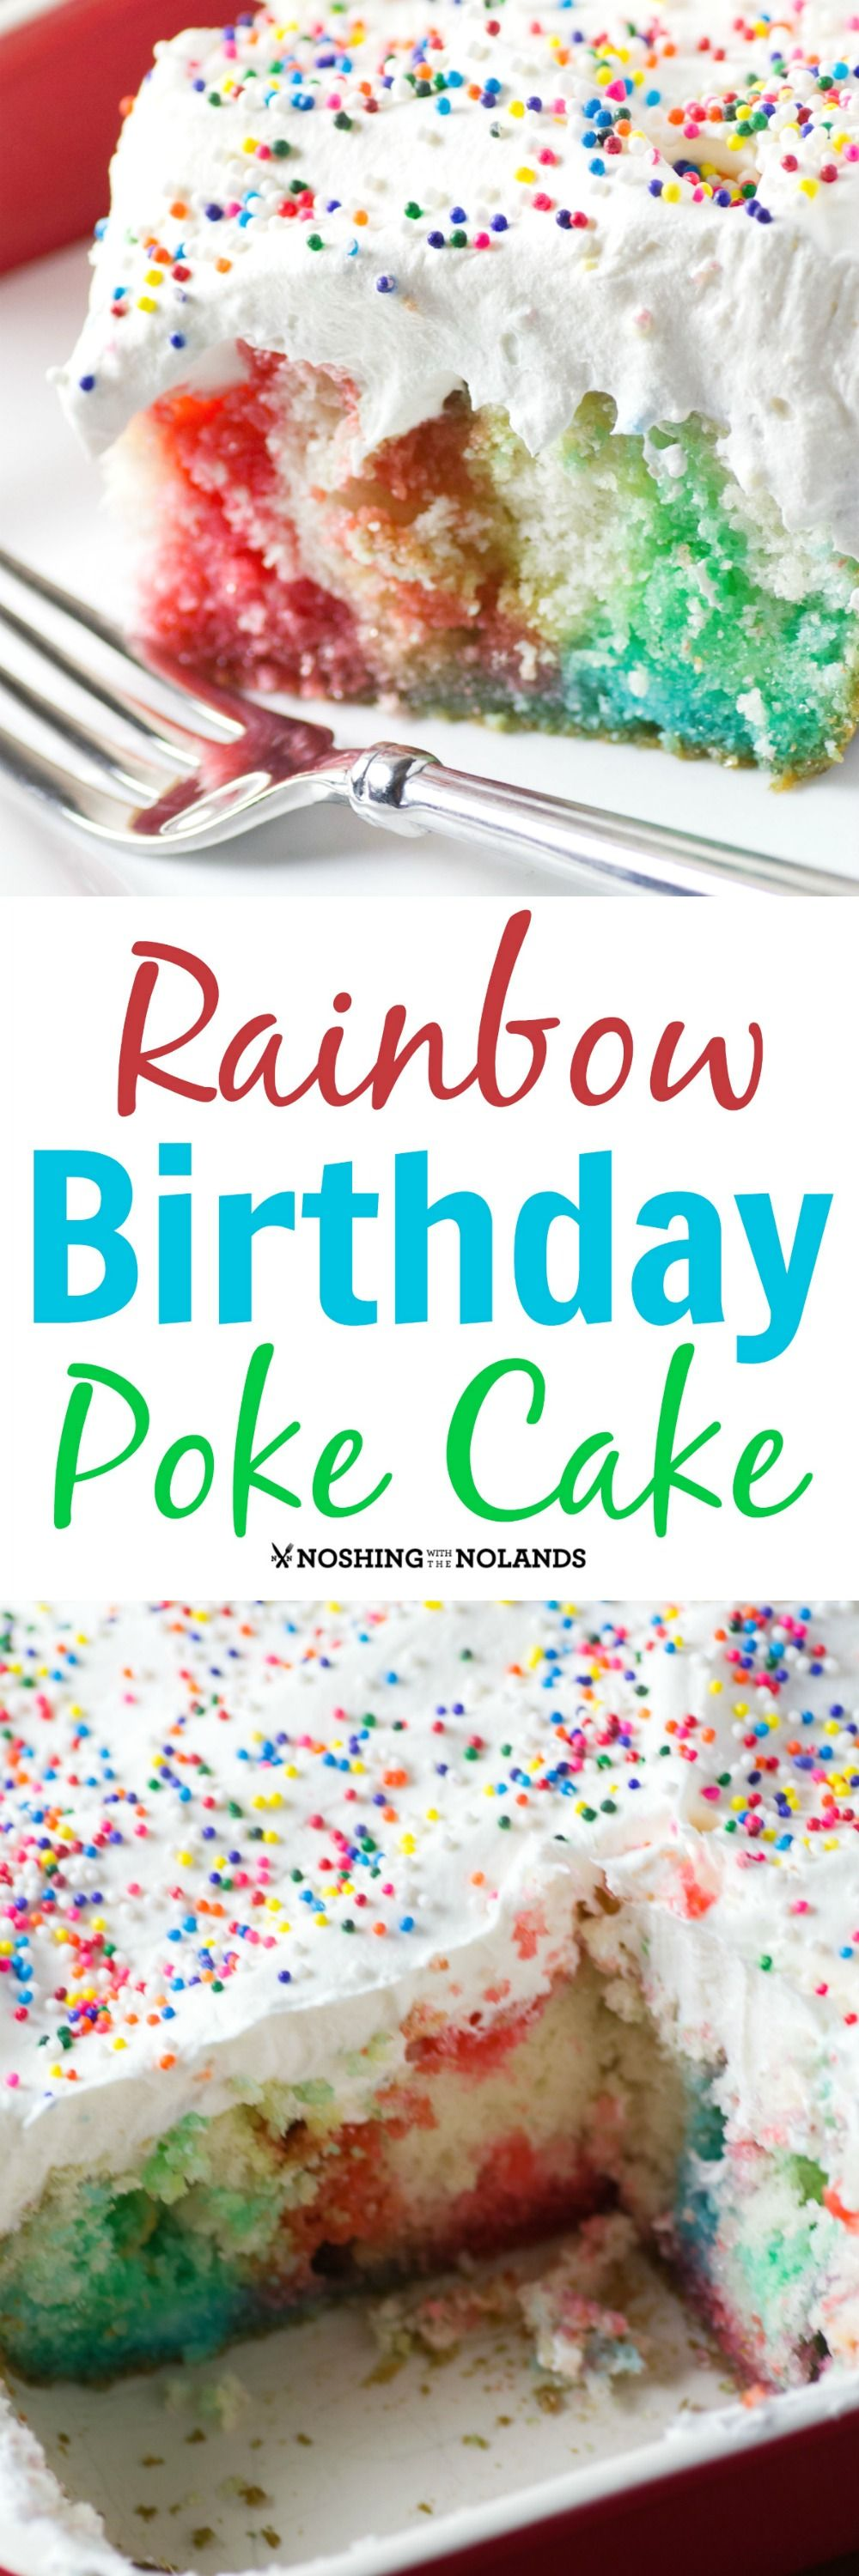 Rainbow Birthday Poke Cake By Noshing With The Nolands Is A Fun Cake